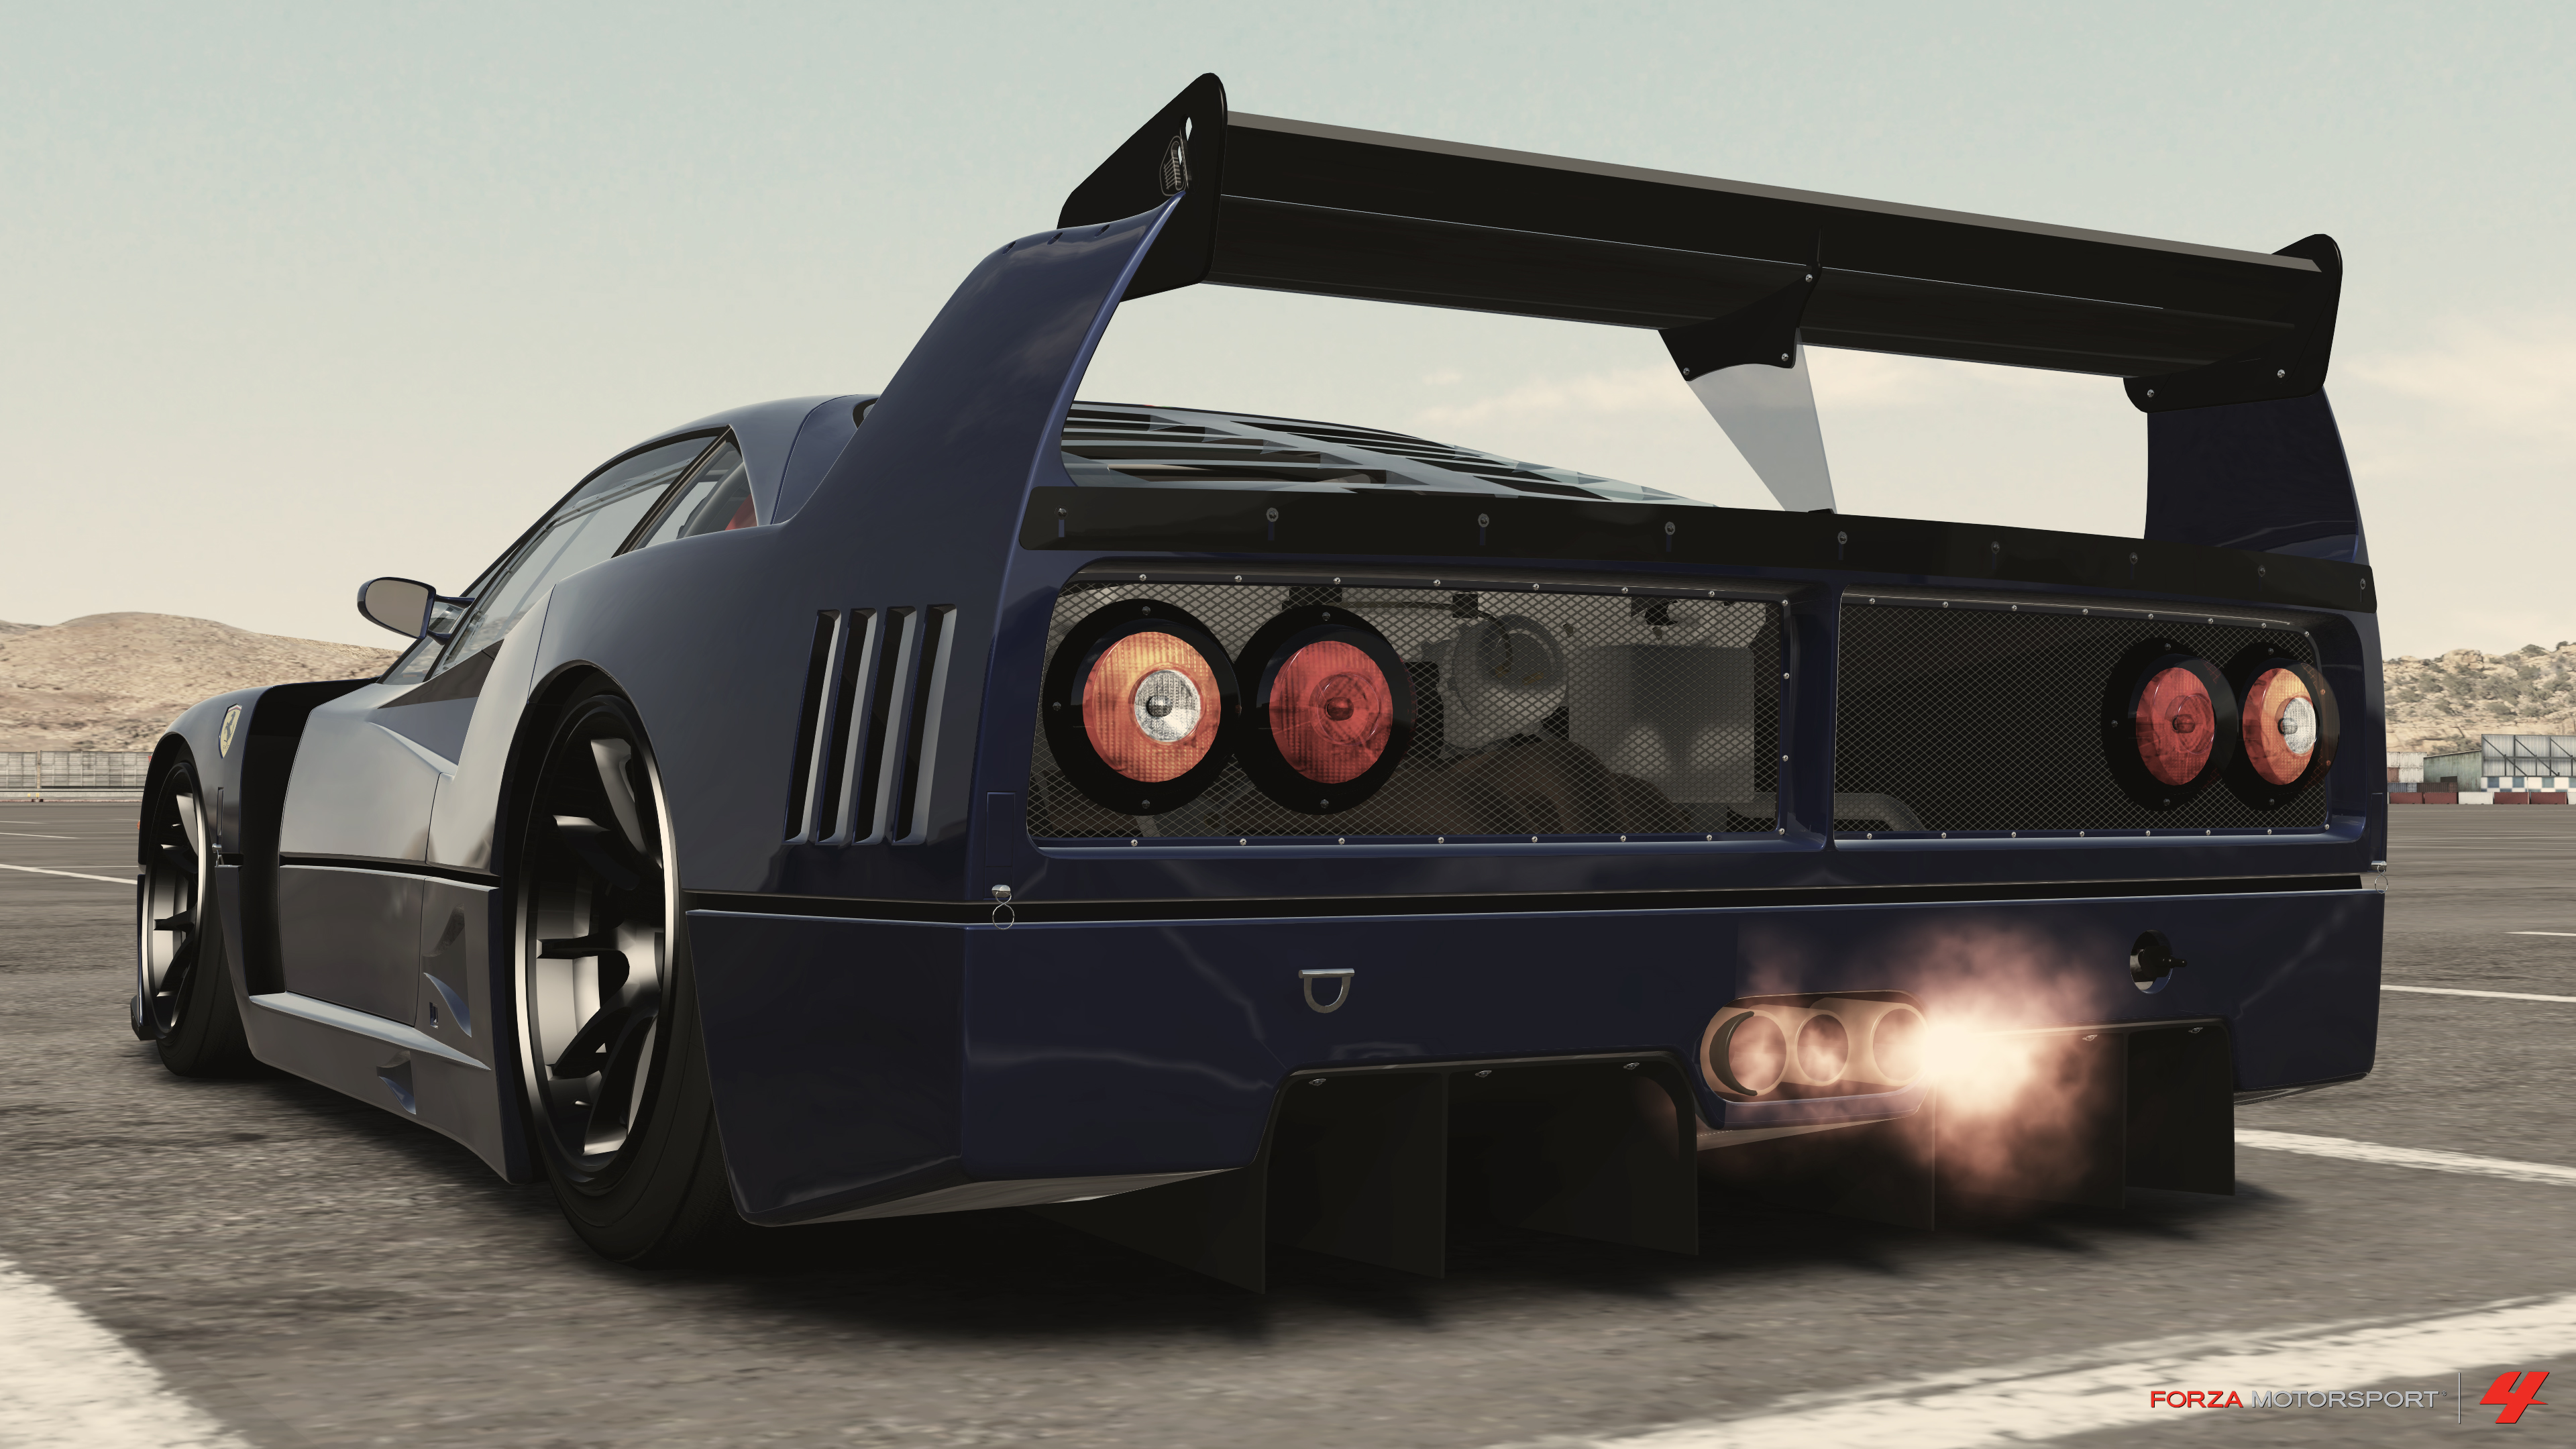 F40 Fezza' spitting flames